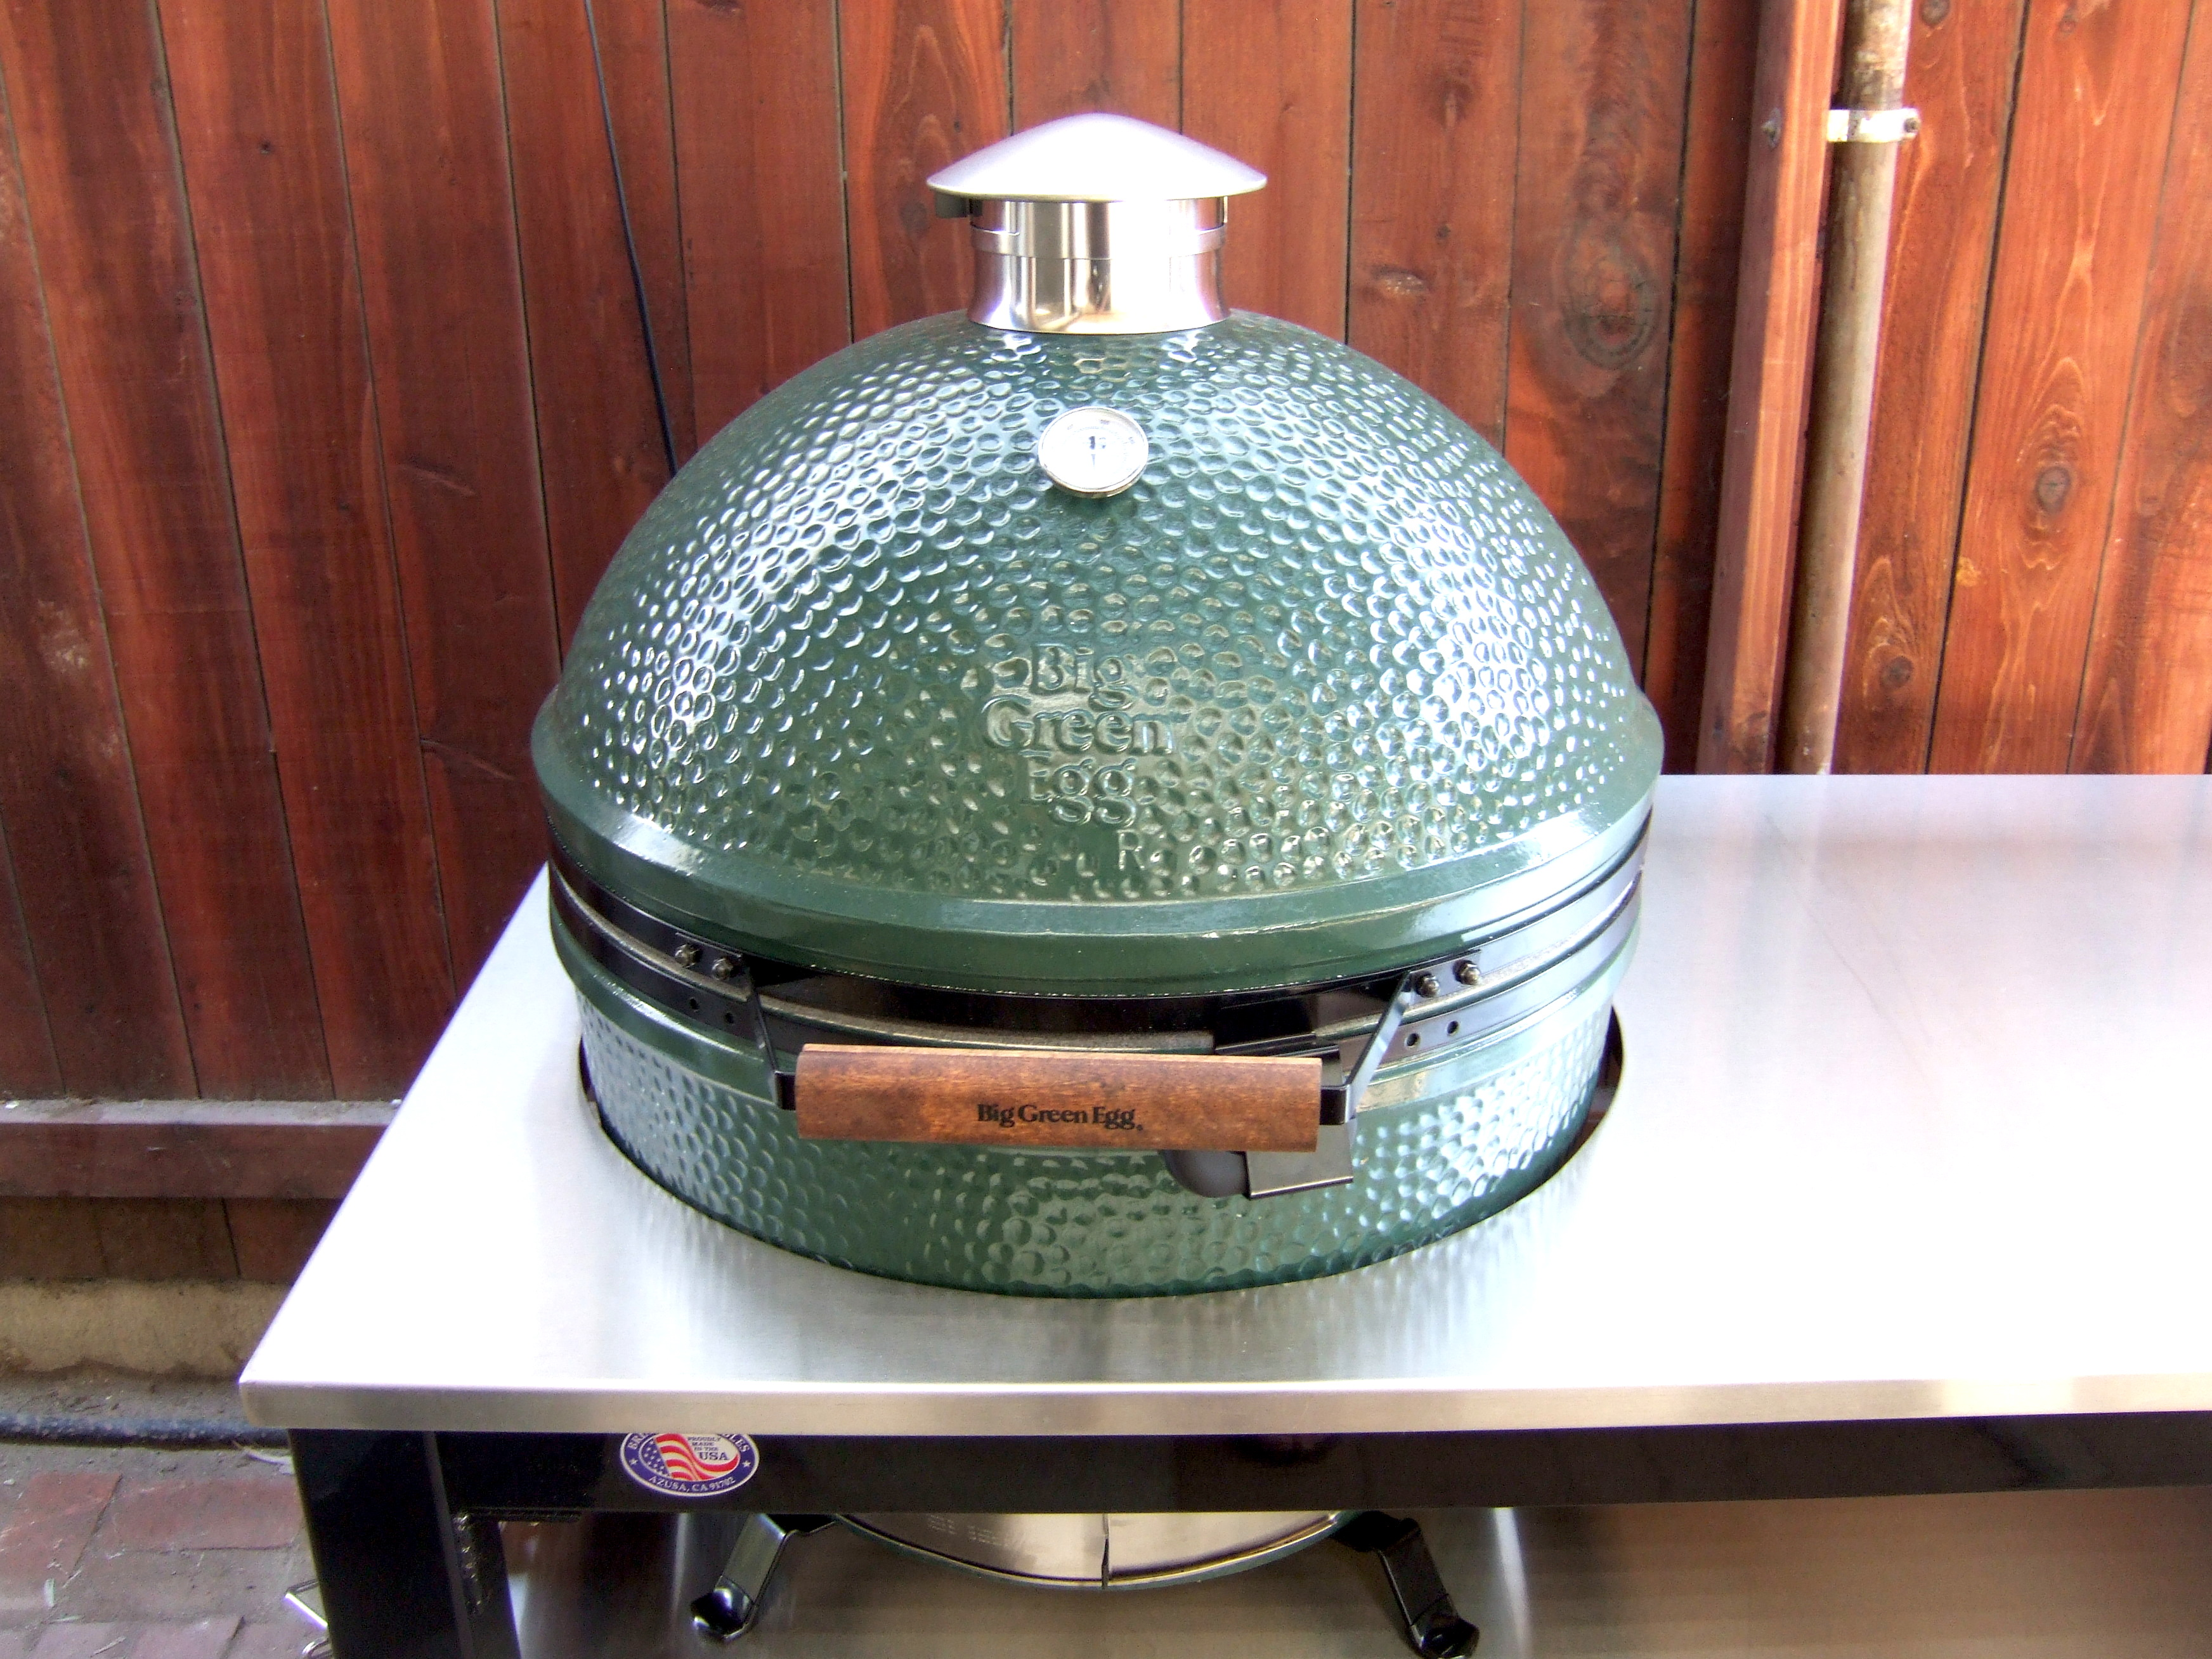 New Stainless Steel Table Custom Built For My XL Egg Big Green Egg - Custom stainless steel table top